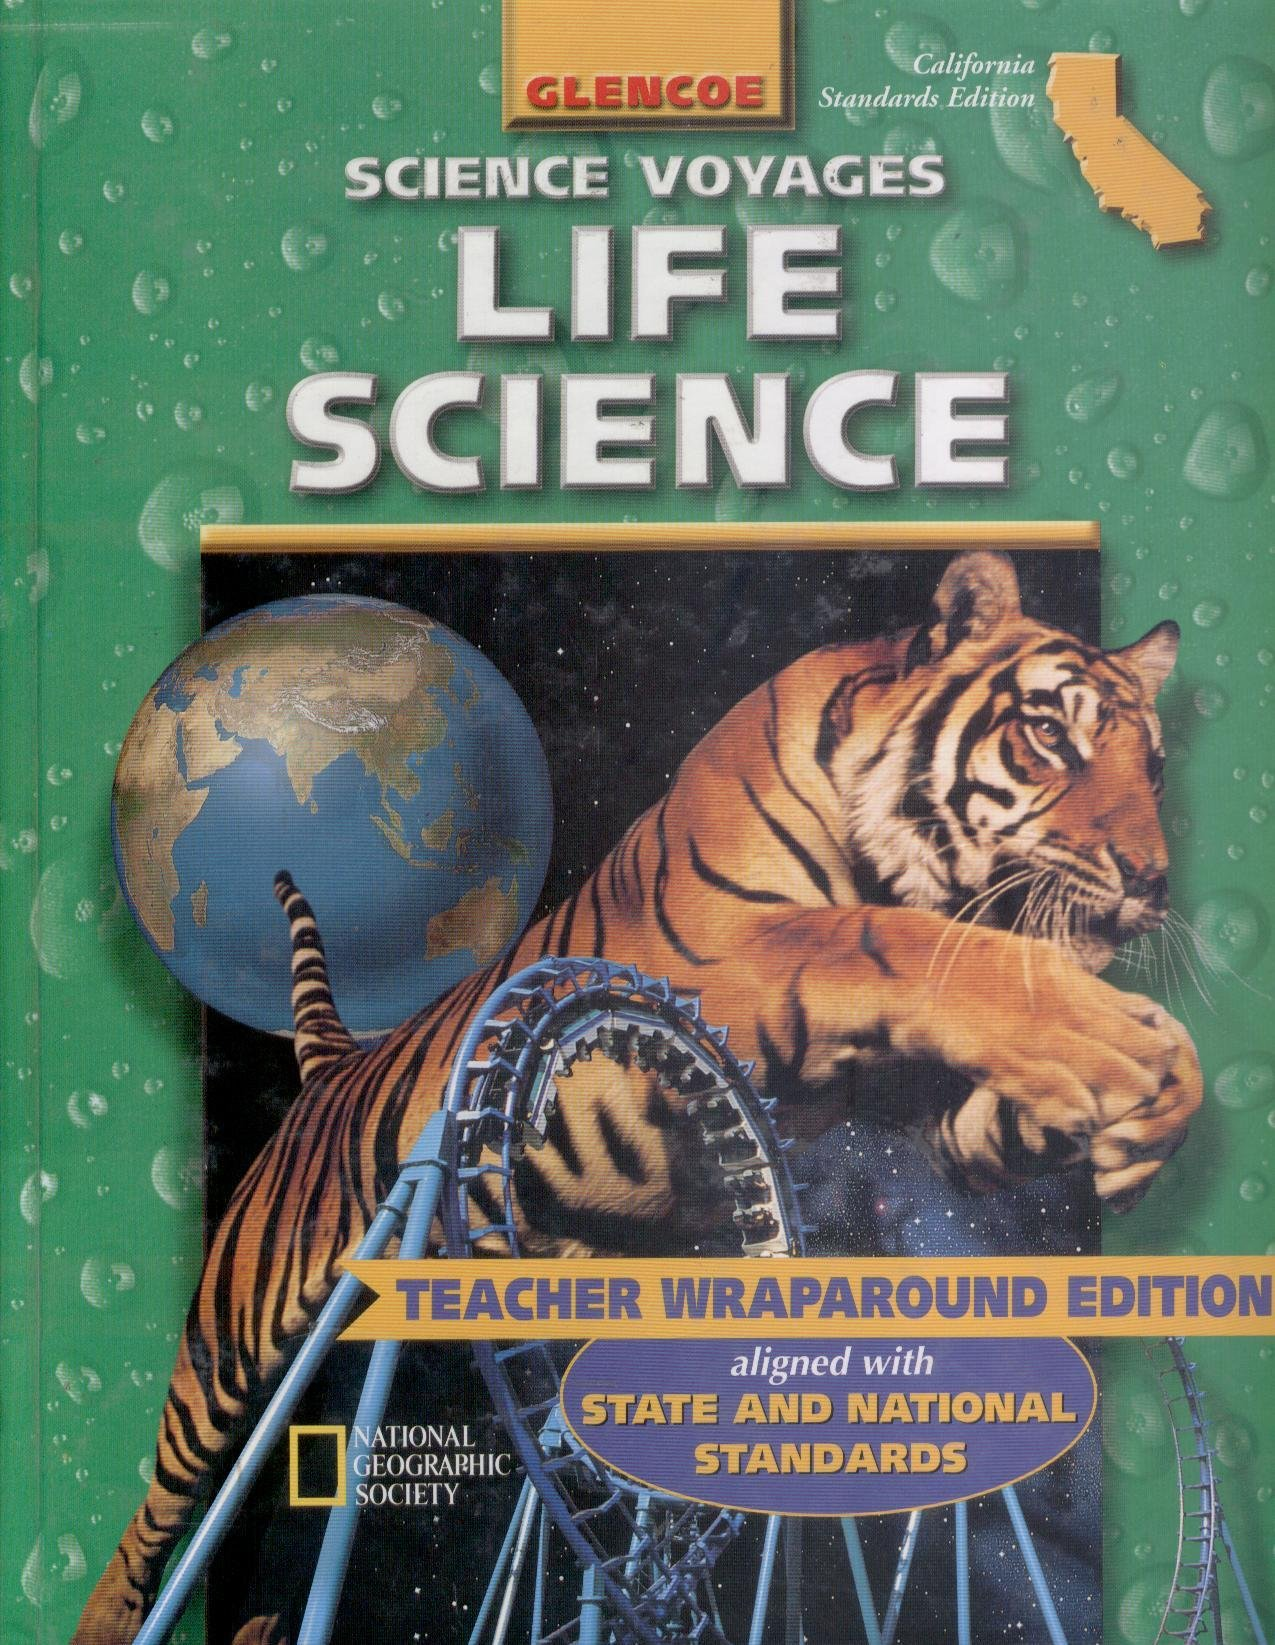 Worksheets Glencoe Life Science Worksheets glencoe mcgraw hill science voyages 7th grade life california edition teacher 2001 isbn 0078239907 9780078239908 a